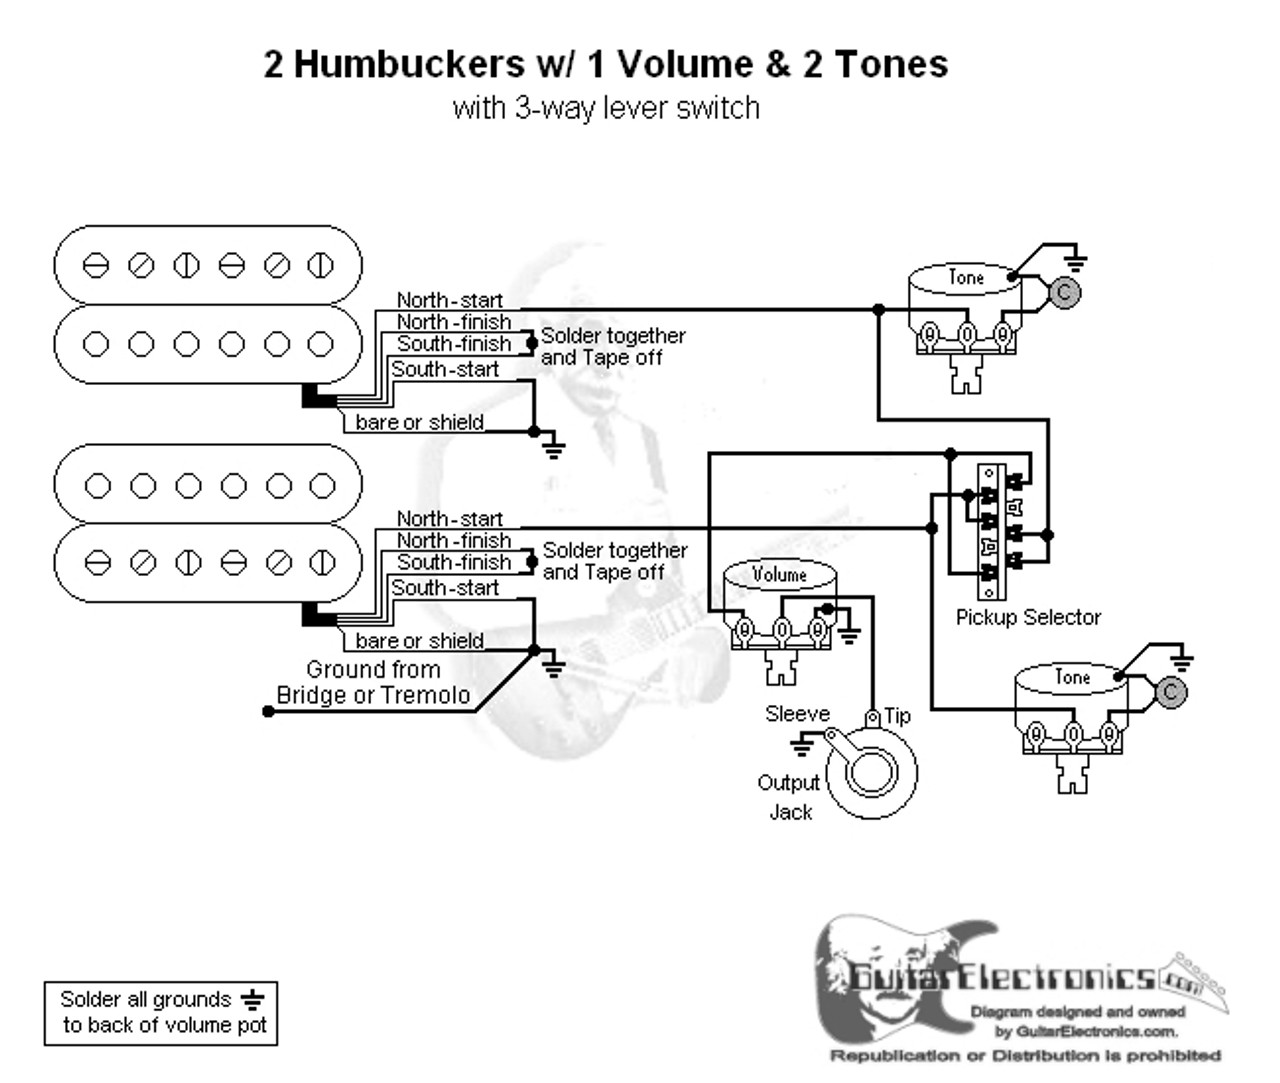 strat wiring diagram 1 volume 2 tones wiring diagram paper2 humbuckers 3 way lever switch 1 volume 2 tones bass wiring diagram 1 volume 2 tone strat wiring  [ 1280 x 1083 Pixel ]